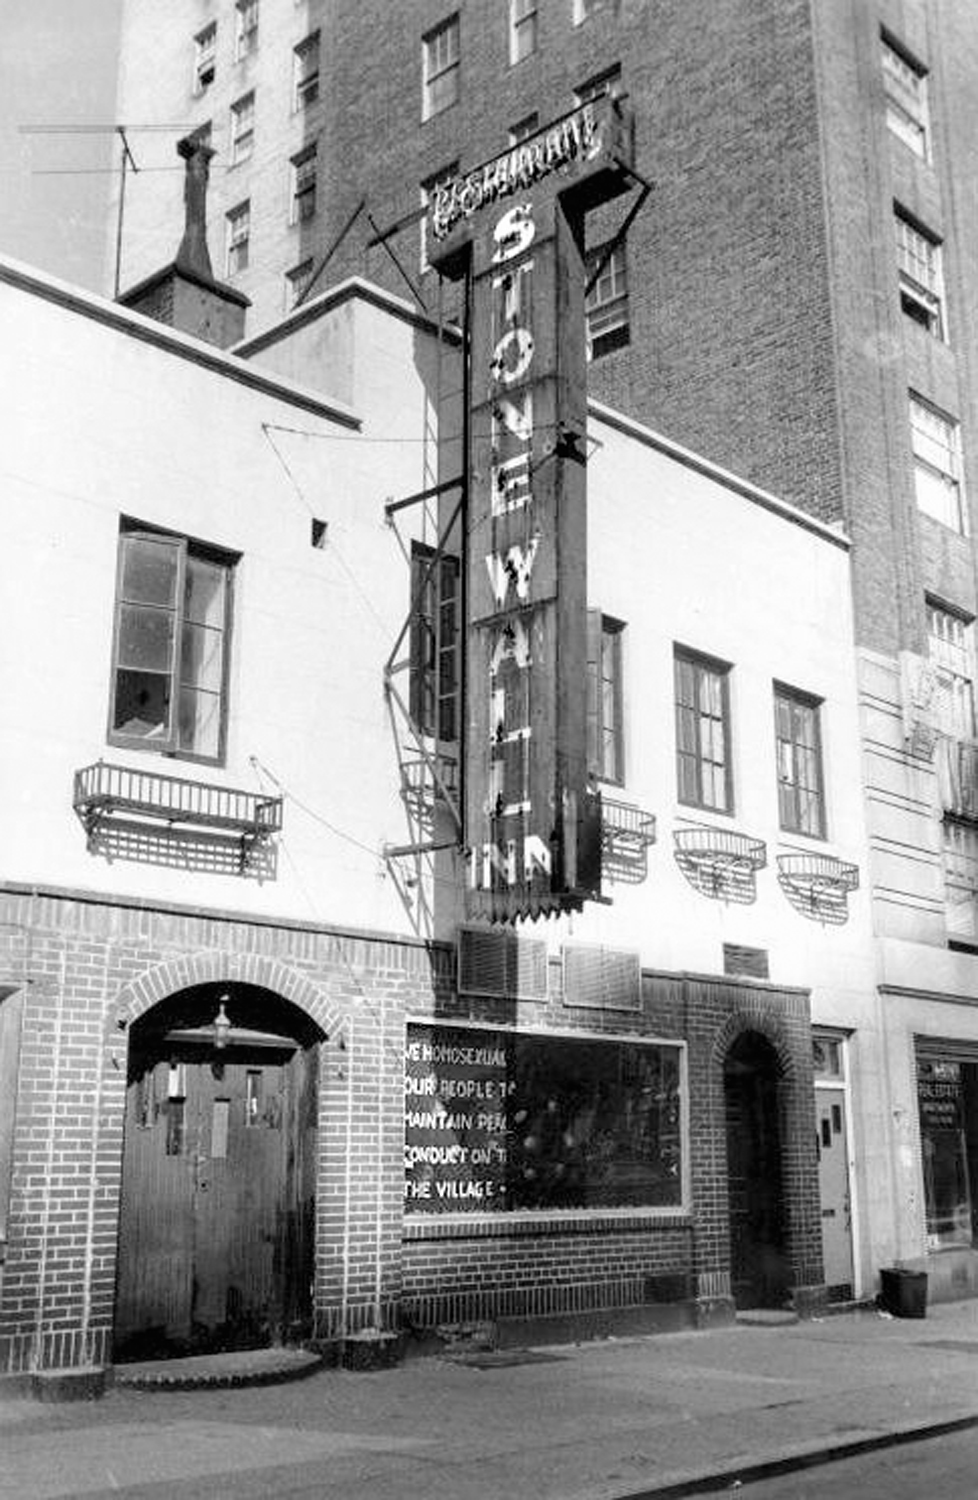 The Stonewall Inn in 1969.